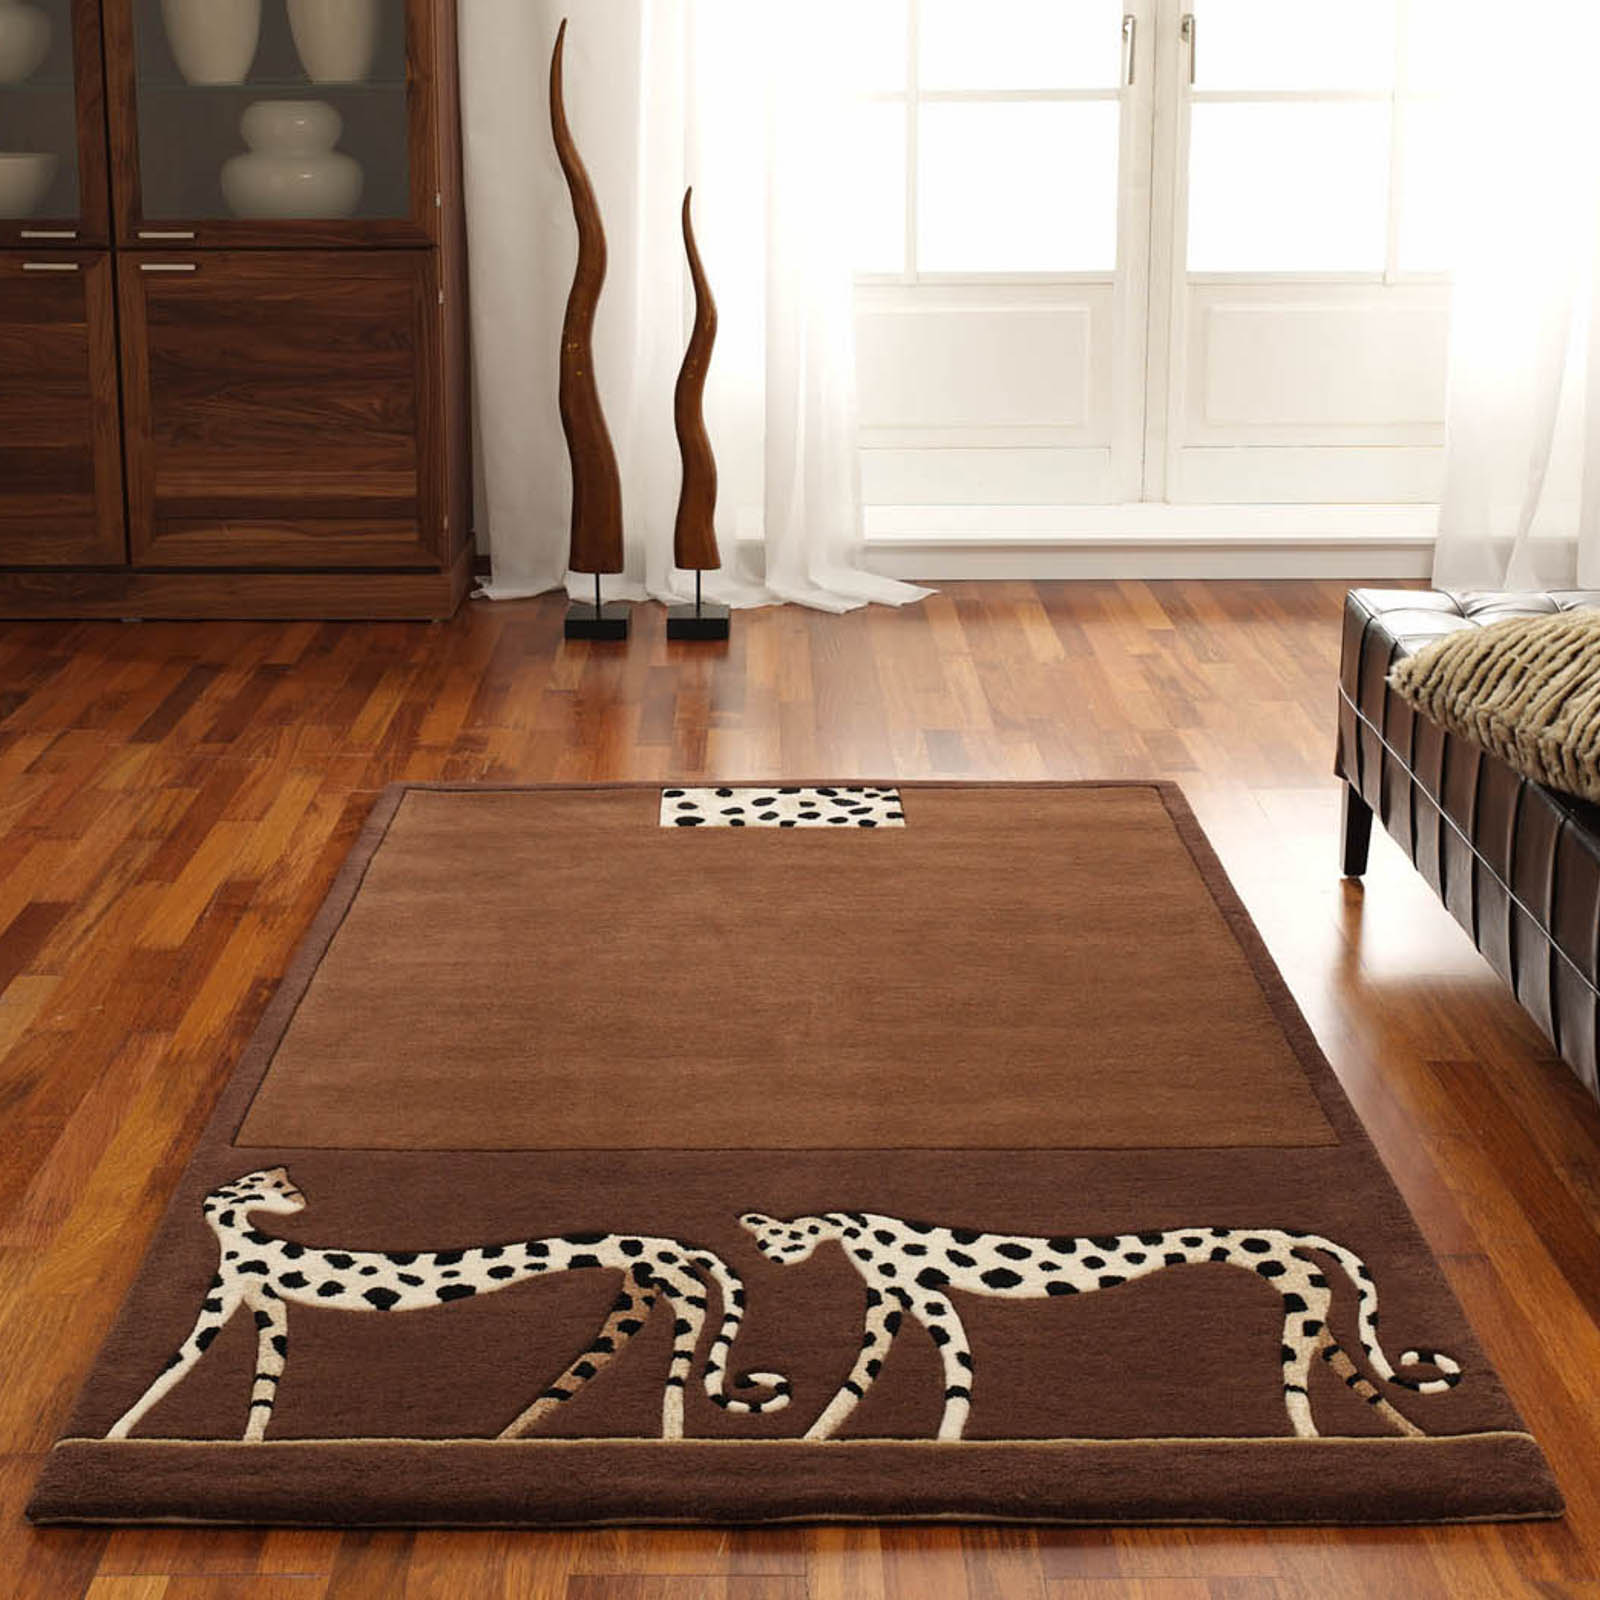 Kalahari Leopard Rugs in Brown